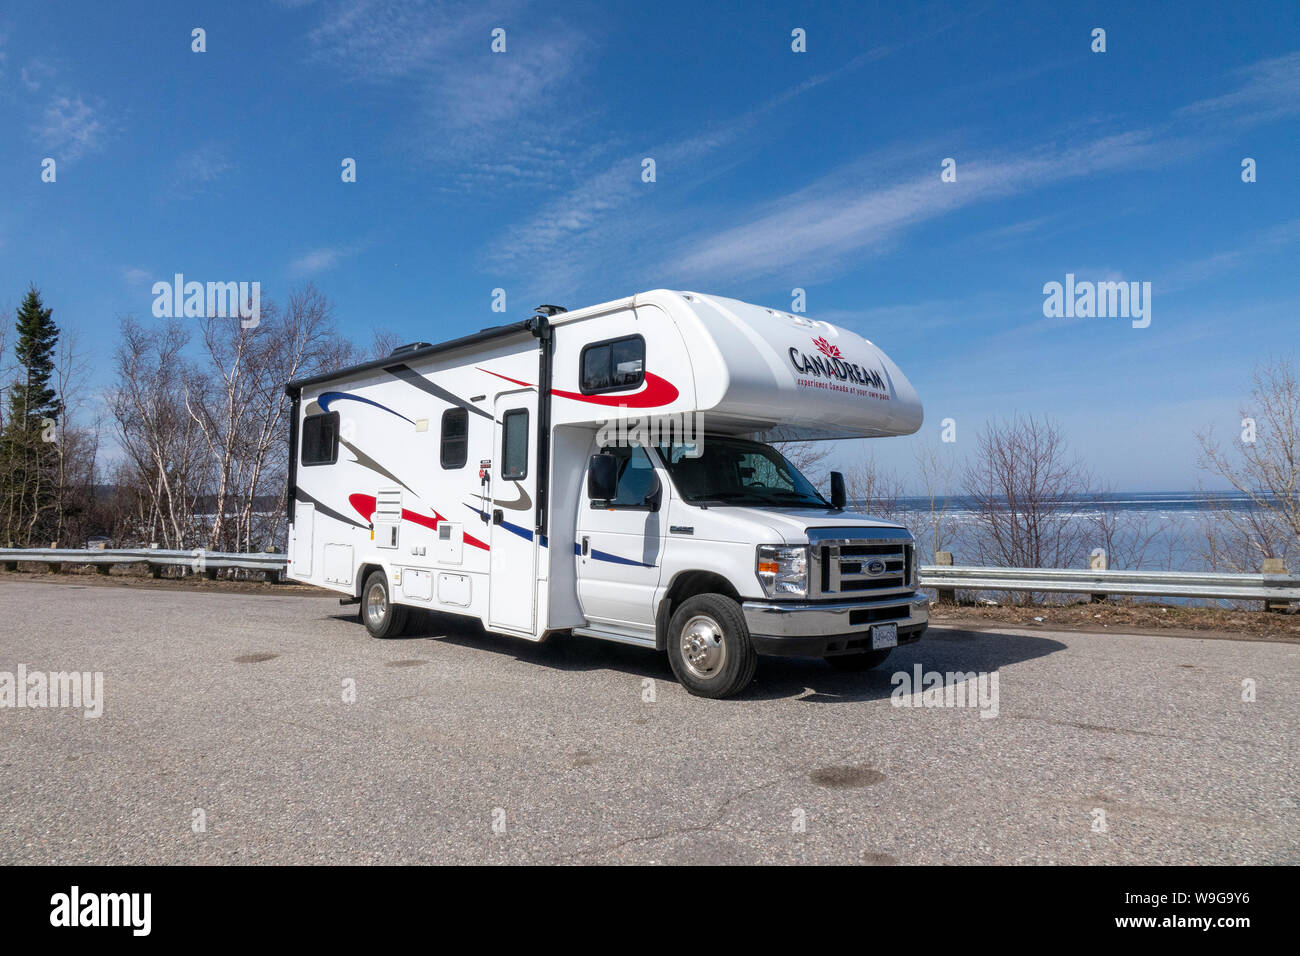 Actualizar Talentoso China  North American Self Drive Rental RV Motorhome Camper Van Class C From  Canadream Company On The Shore Of Lake Superior Northern Ontario Canada  Stock Photo - Alamy